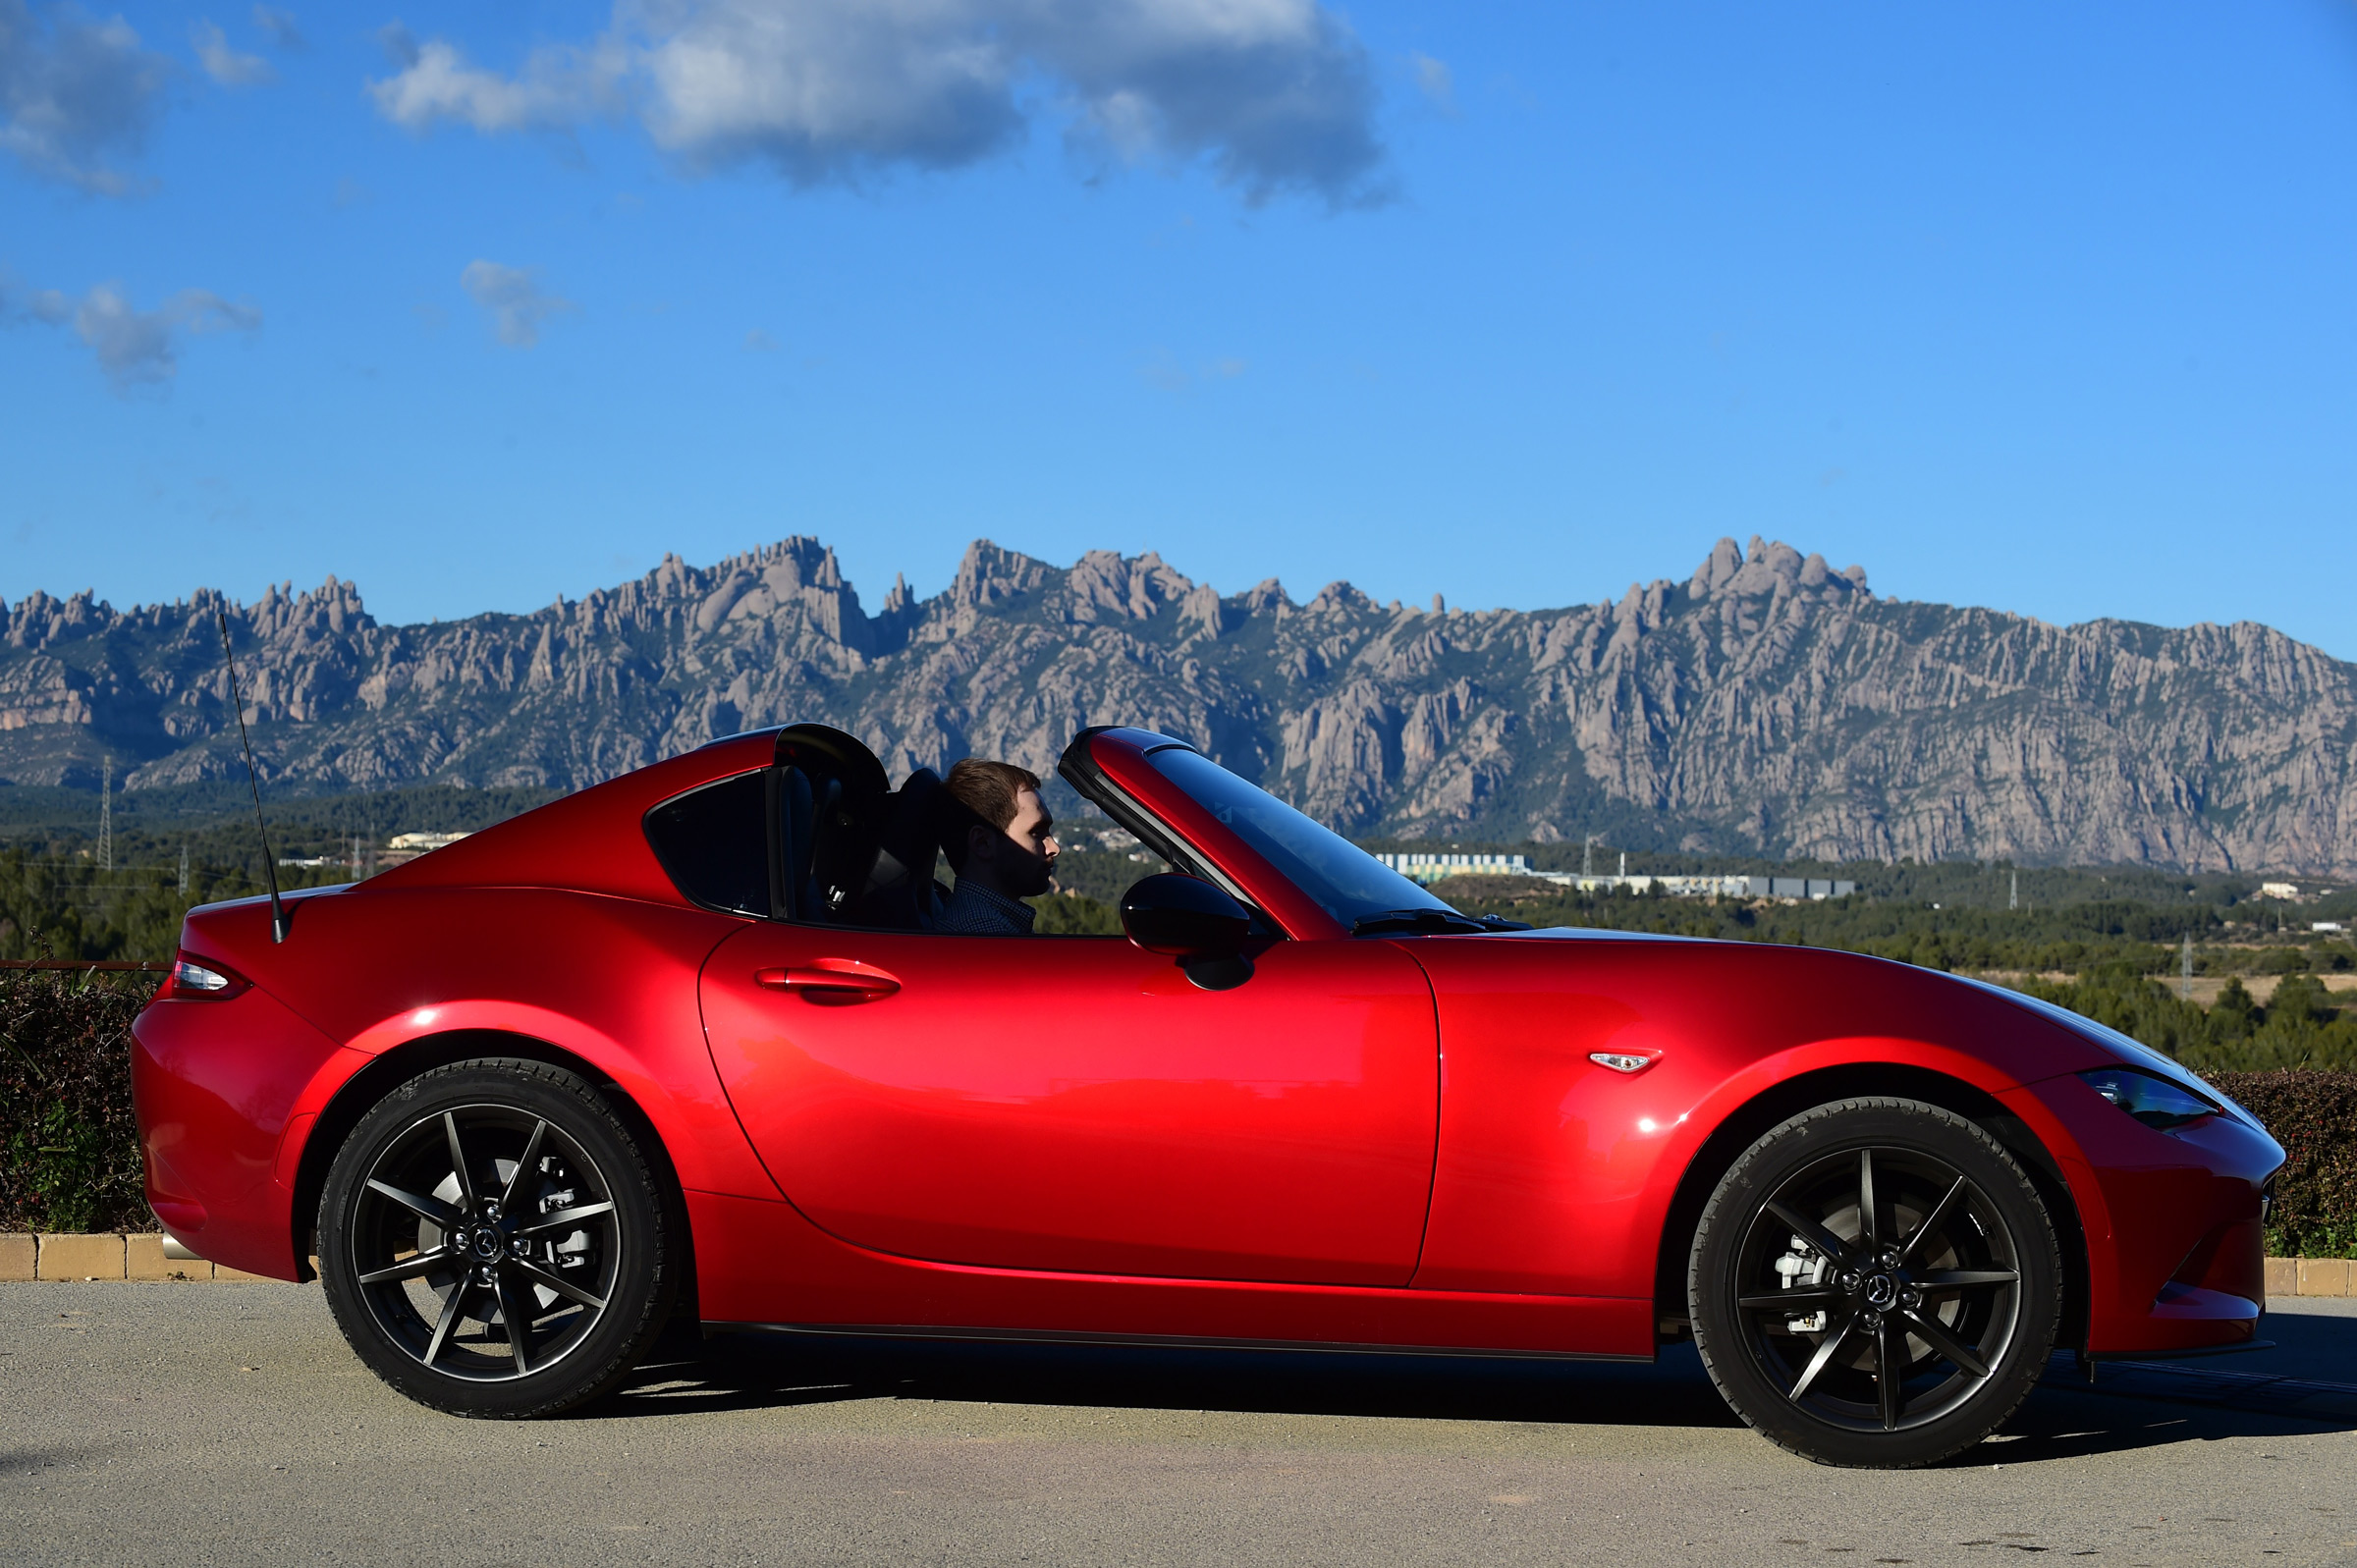 2017 Mazda MX 5 RF Exterior Red Roof Opened (Photo 5 of 20)